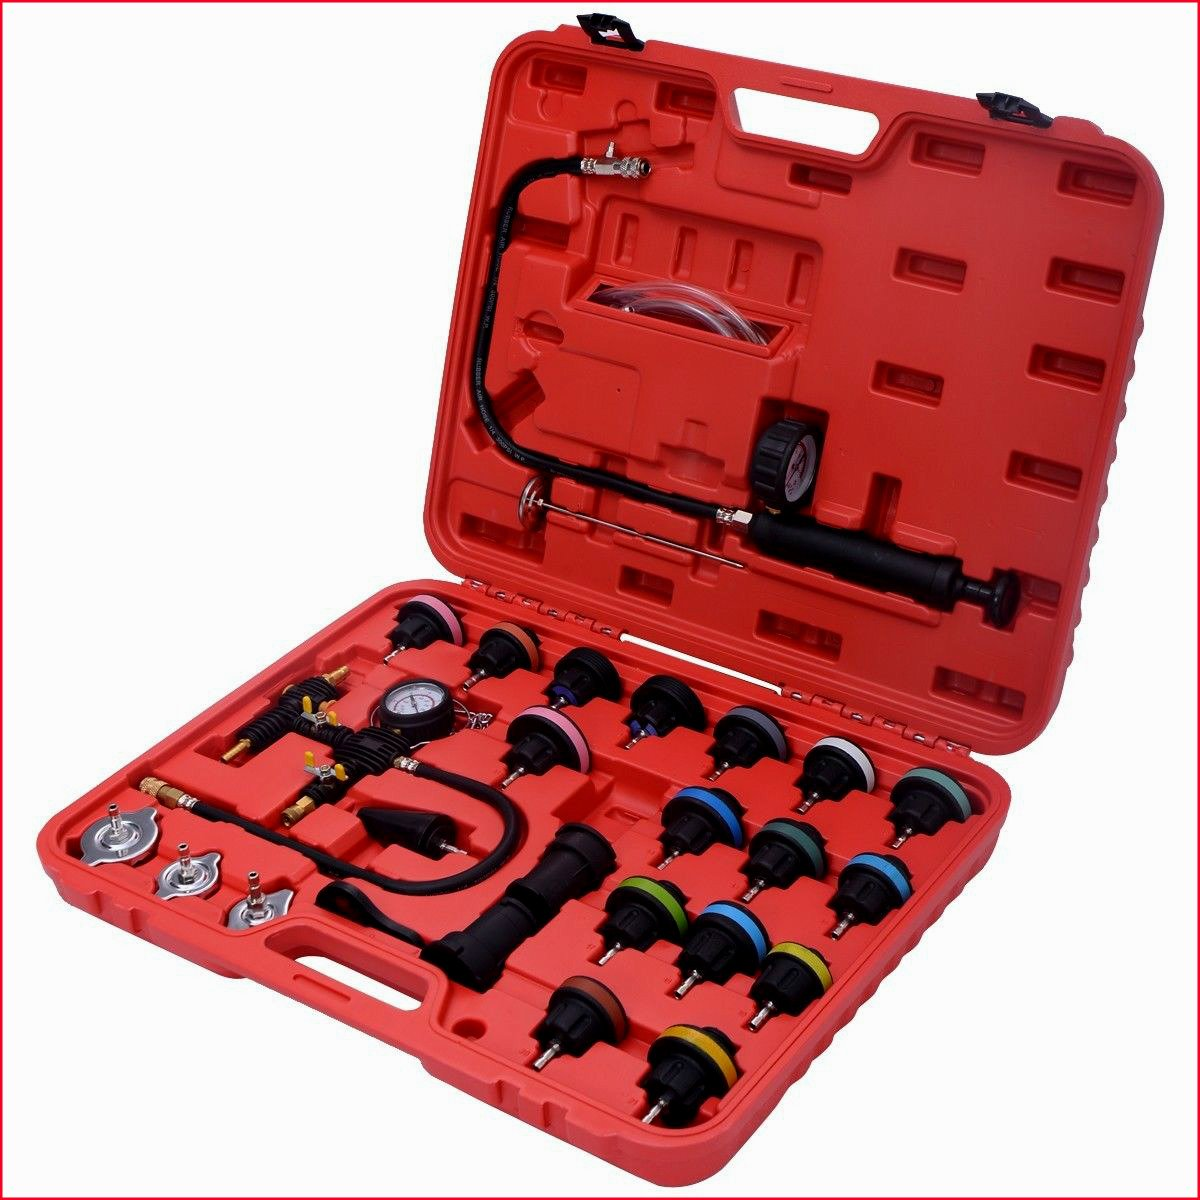 Cooling System Refill Kit Complete Set Radiator Pressure Tester Vacuum 27PCS With Case High Performance Professional Automotive Gear - House Deals by House Deals